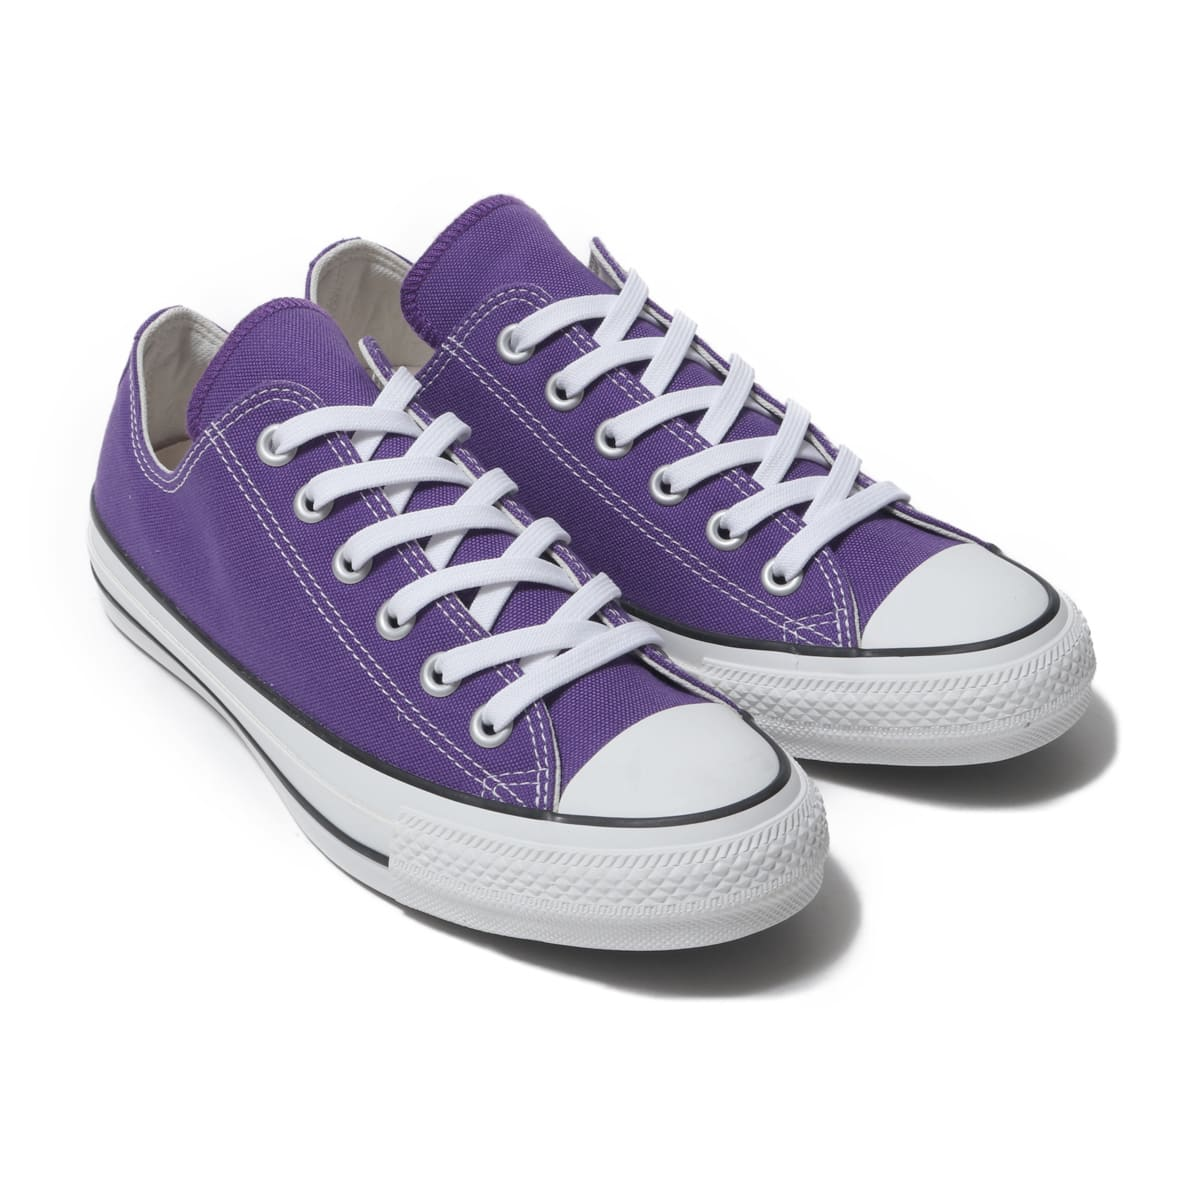 CONVERSE ALL STAR 100 COLORS OX ROYAL PURPLE 19FA-S_photo_large